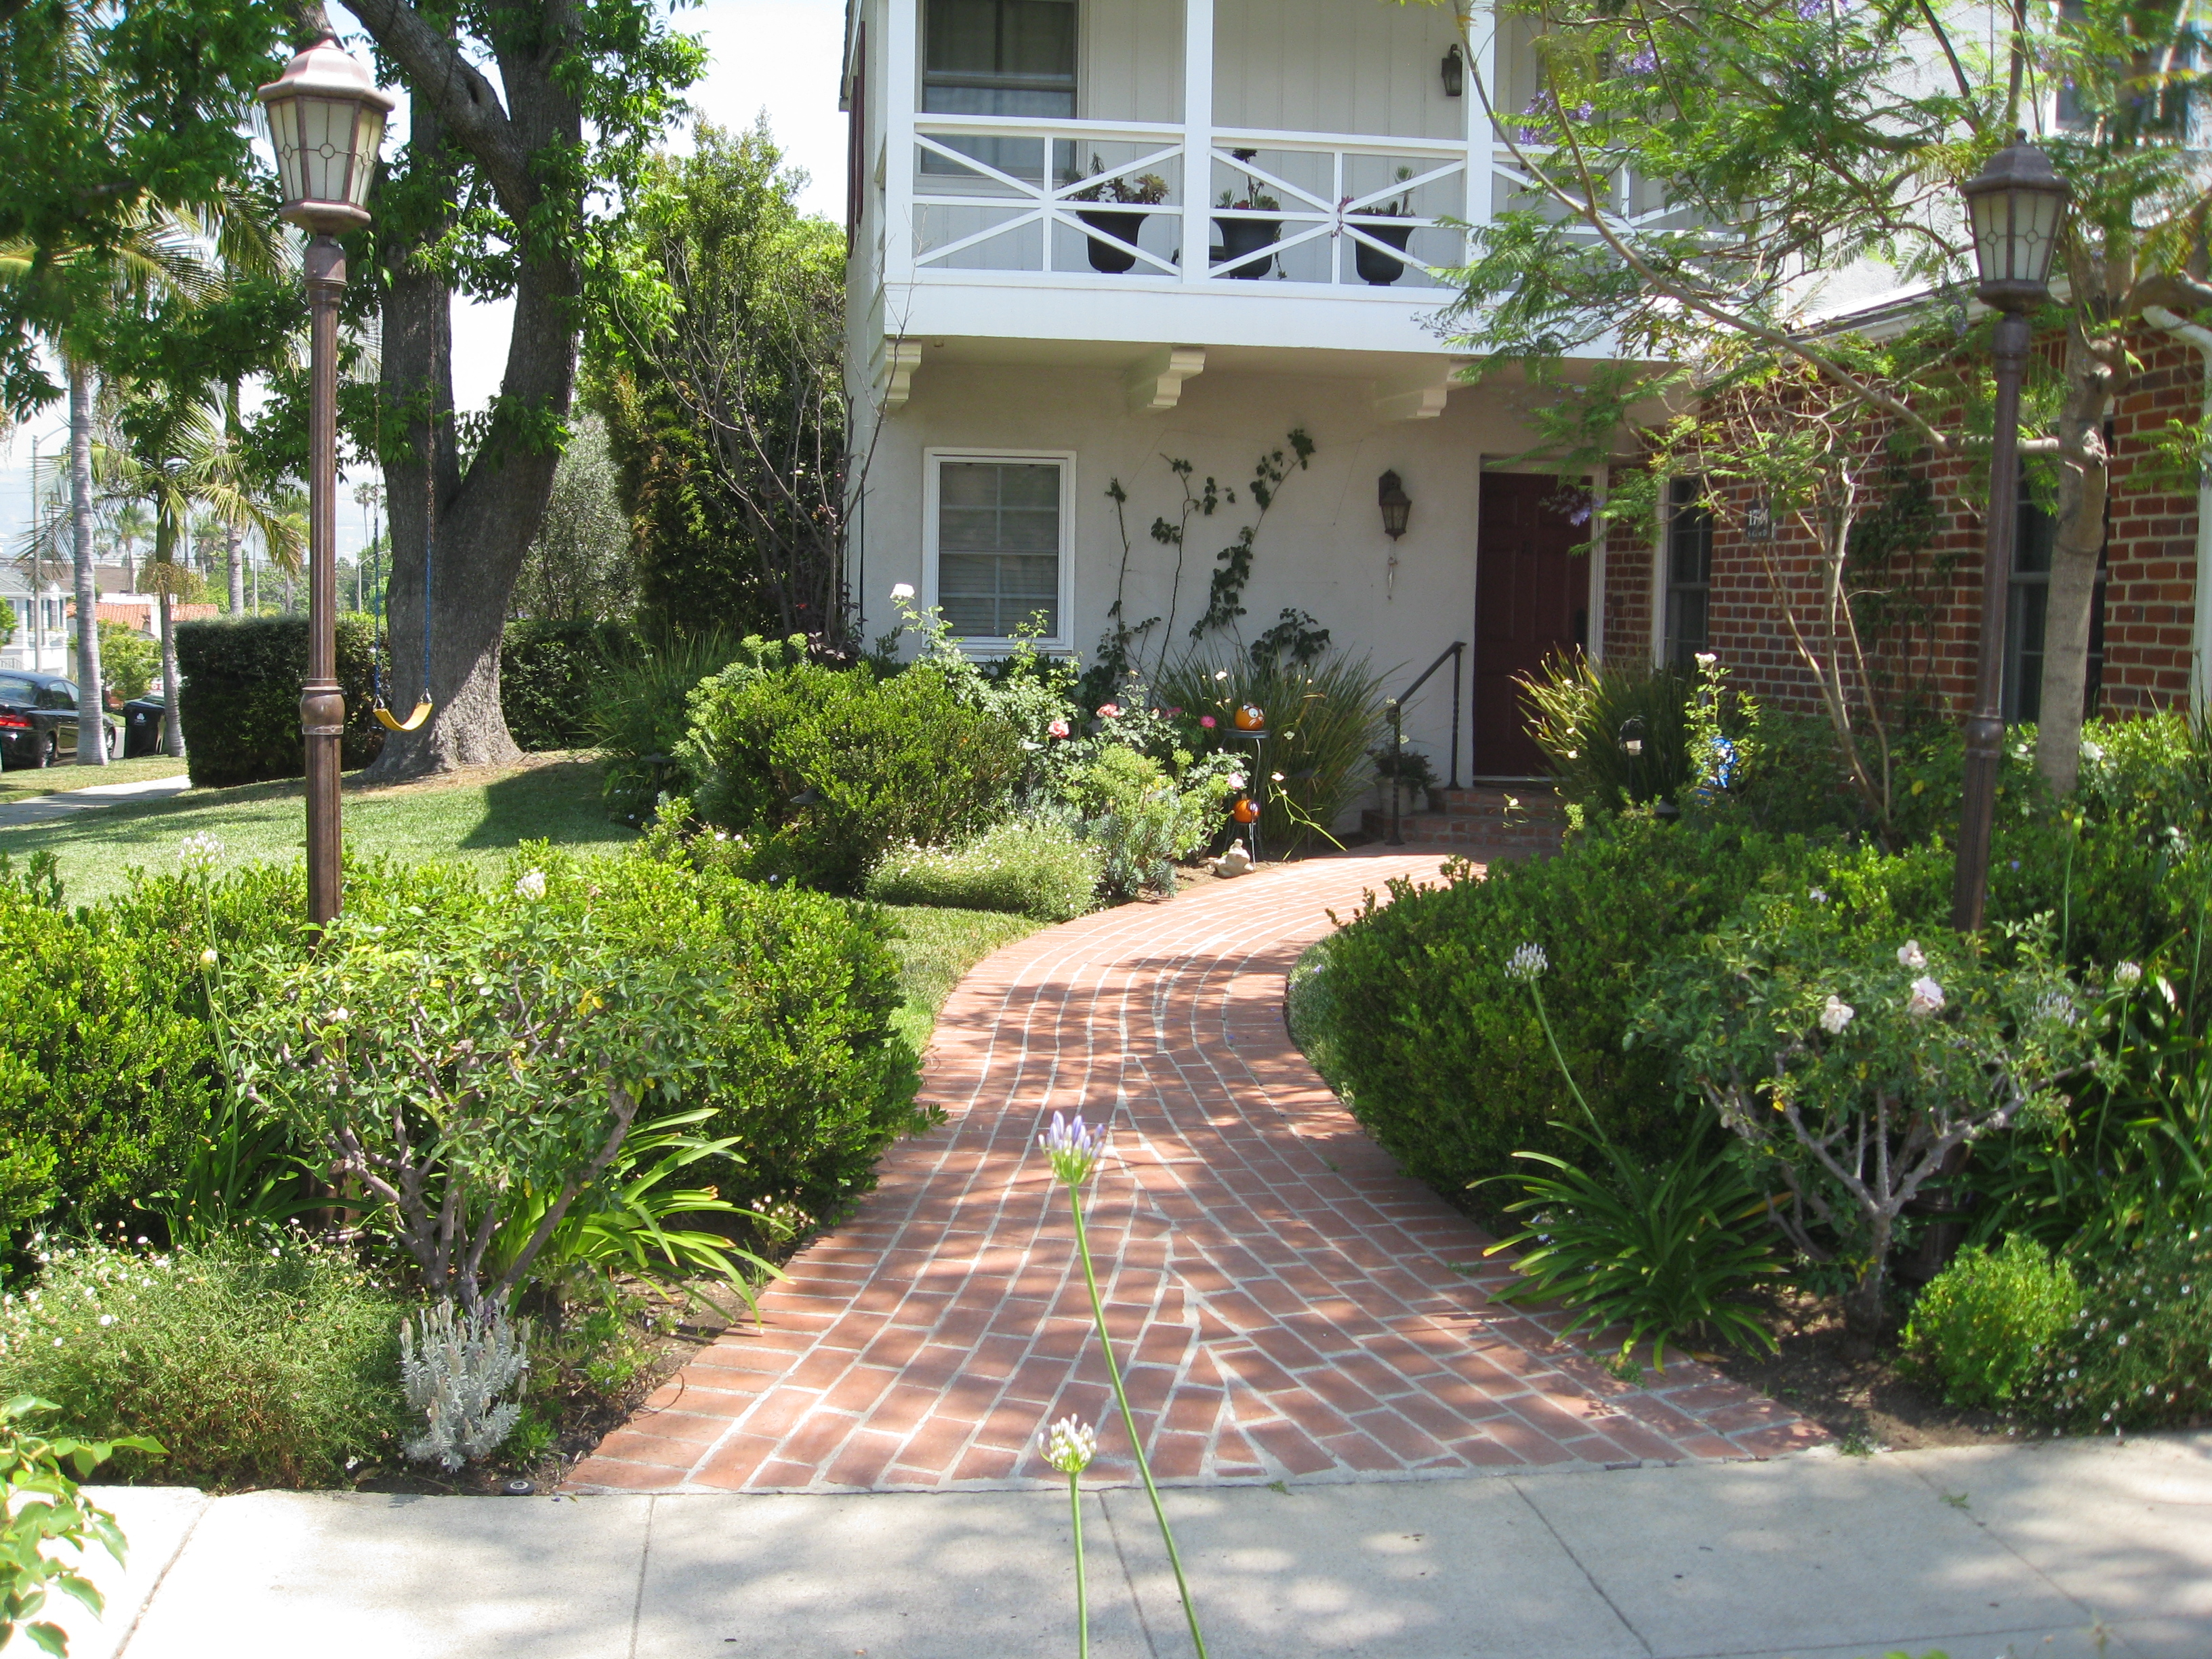 The homeowners didn't like their brick pathway and wanted more native plants in their lives.